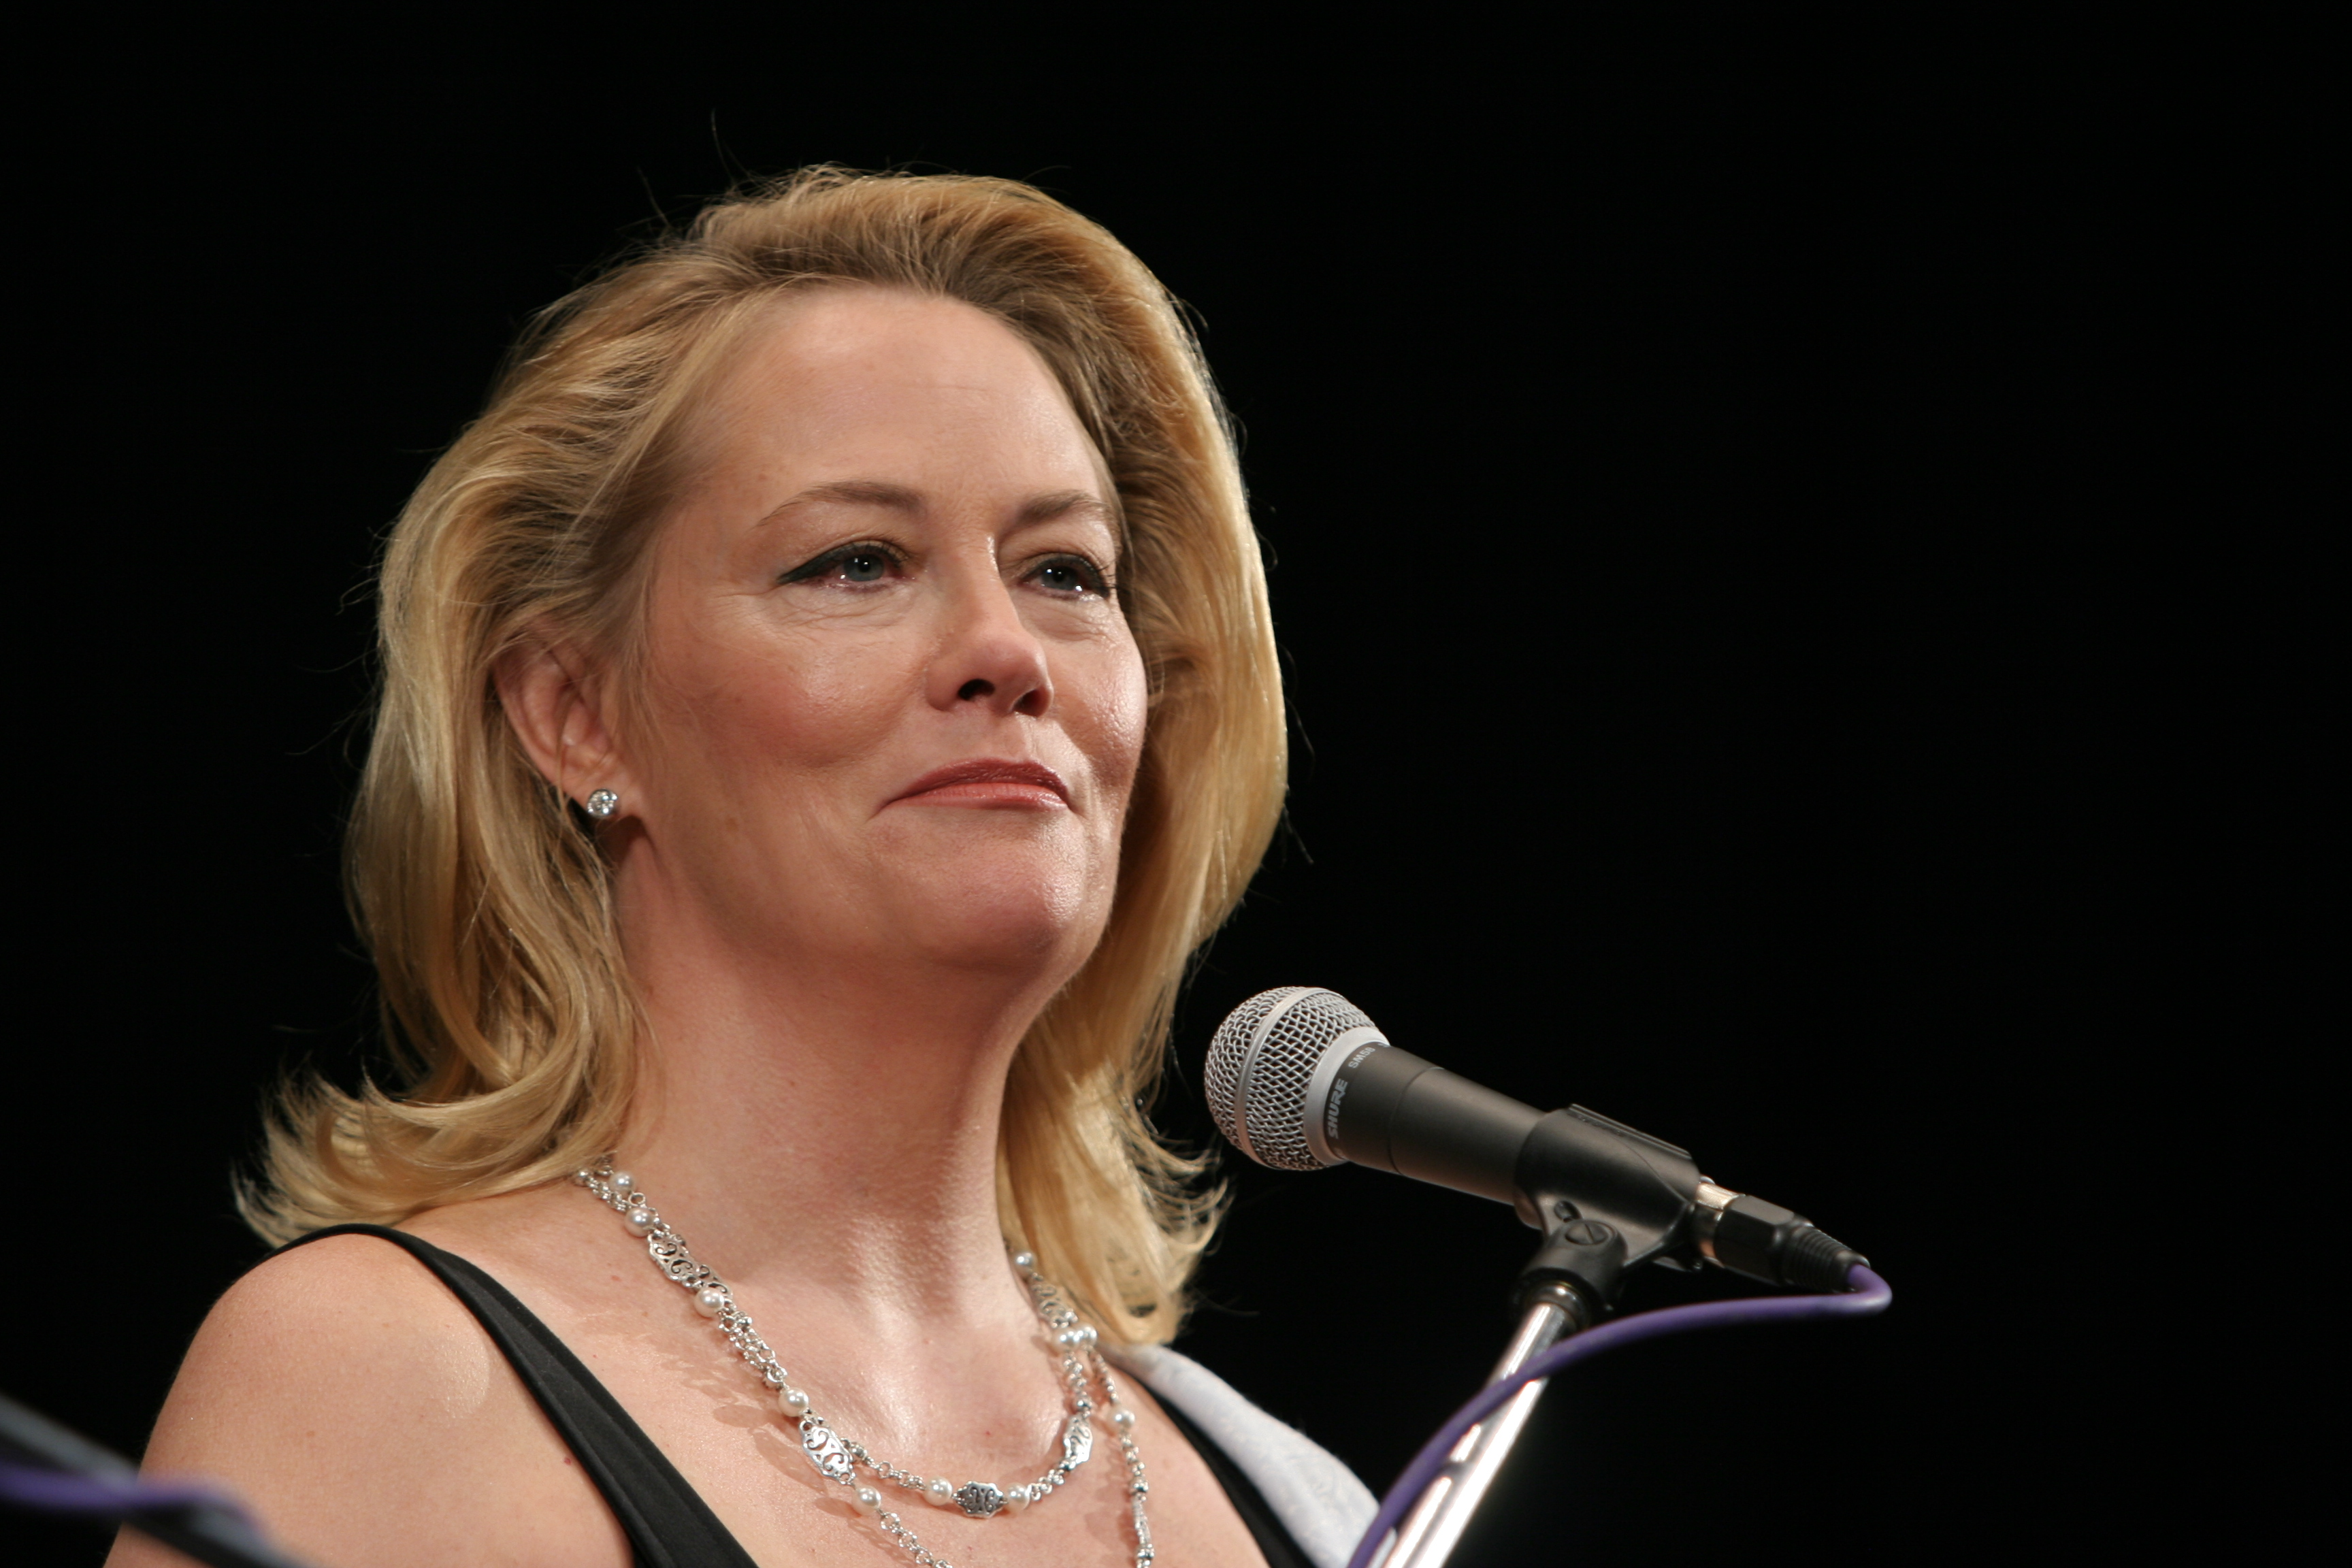 Cybill Shepherd Net Worth